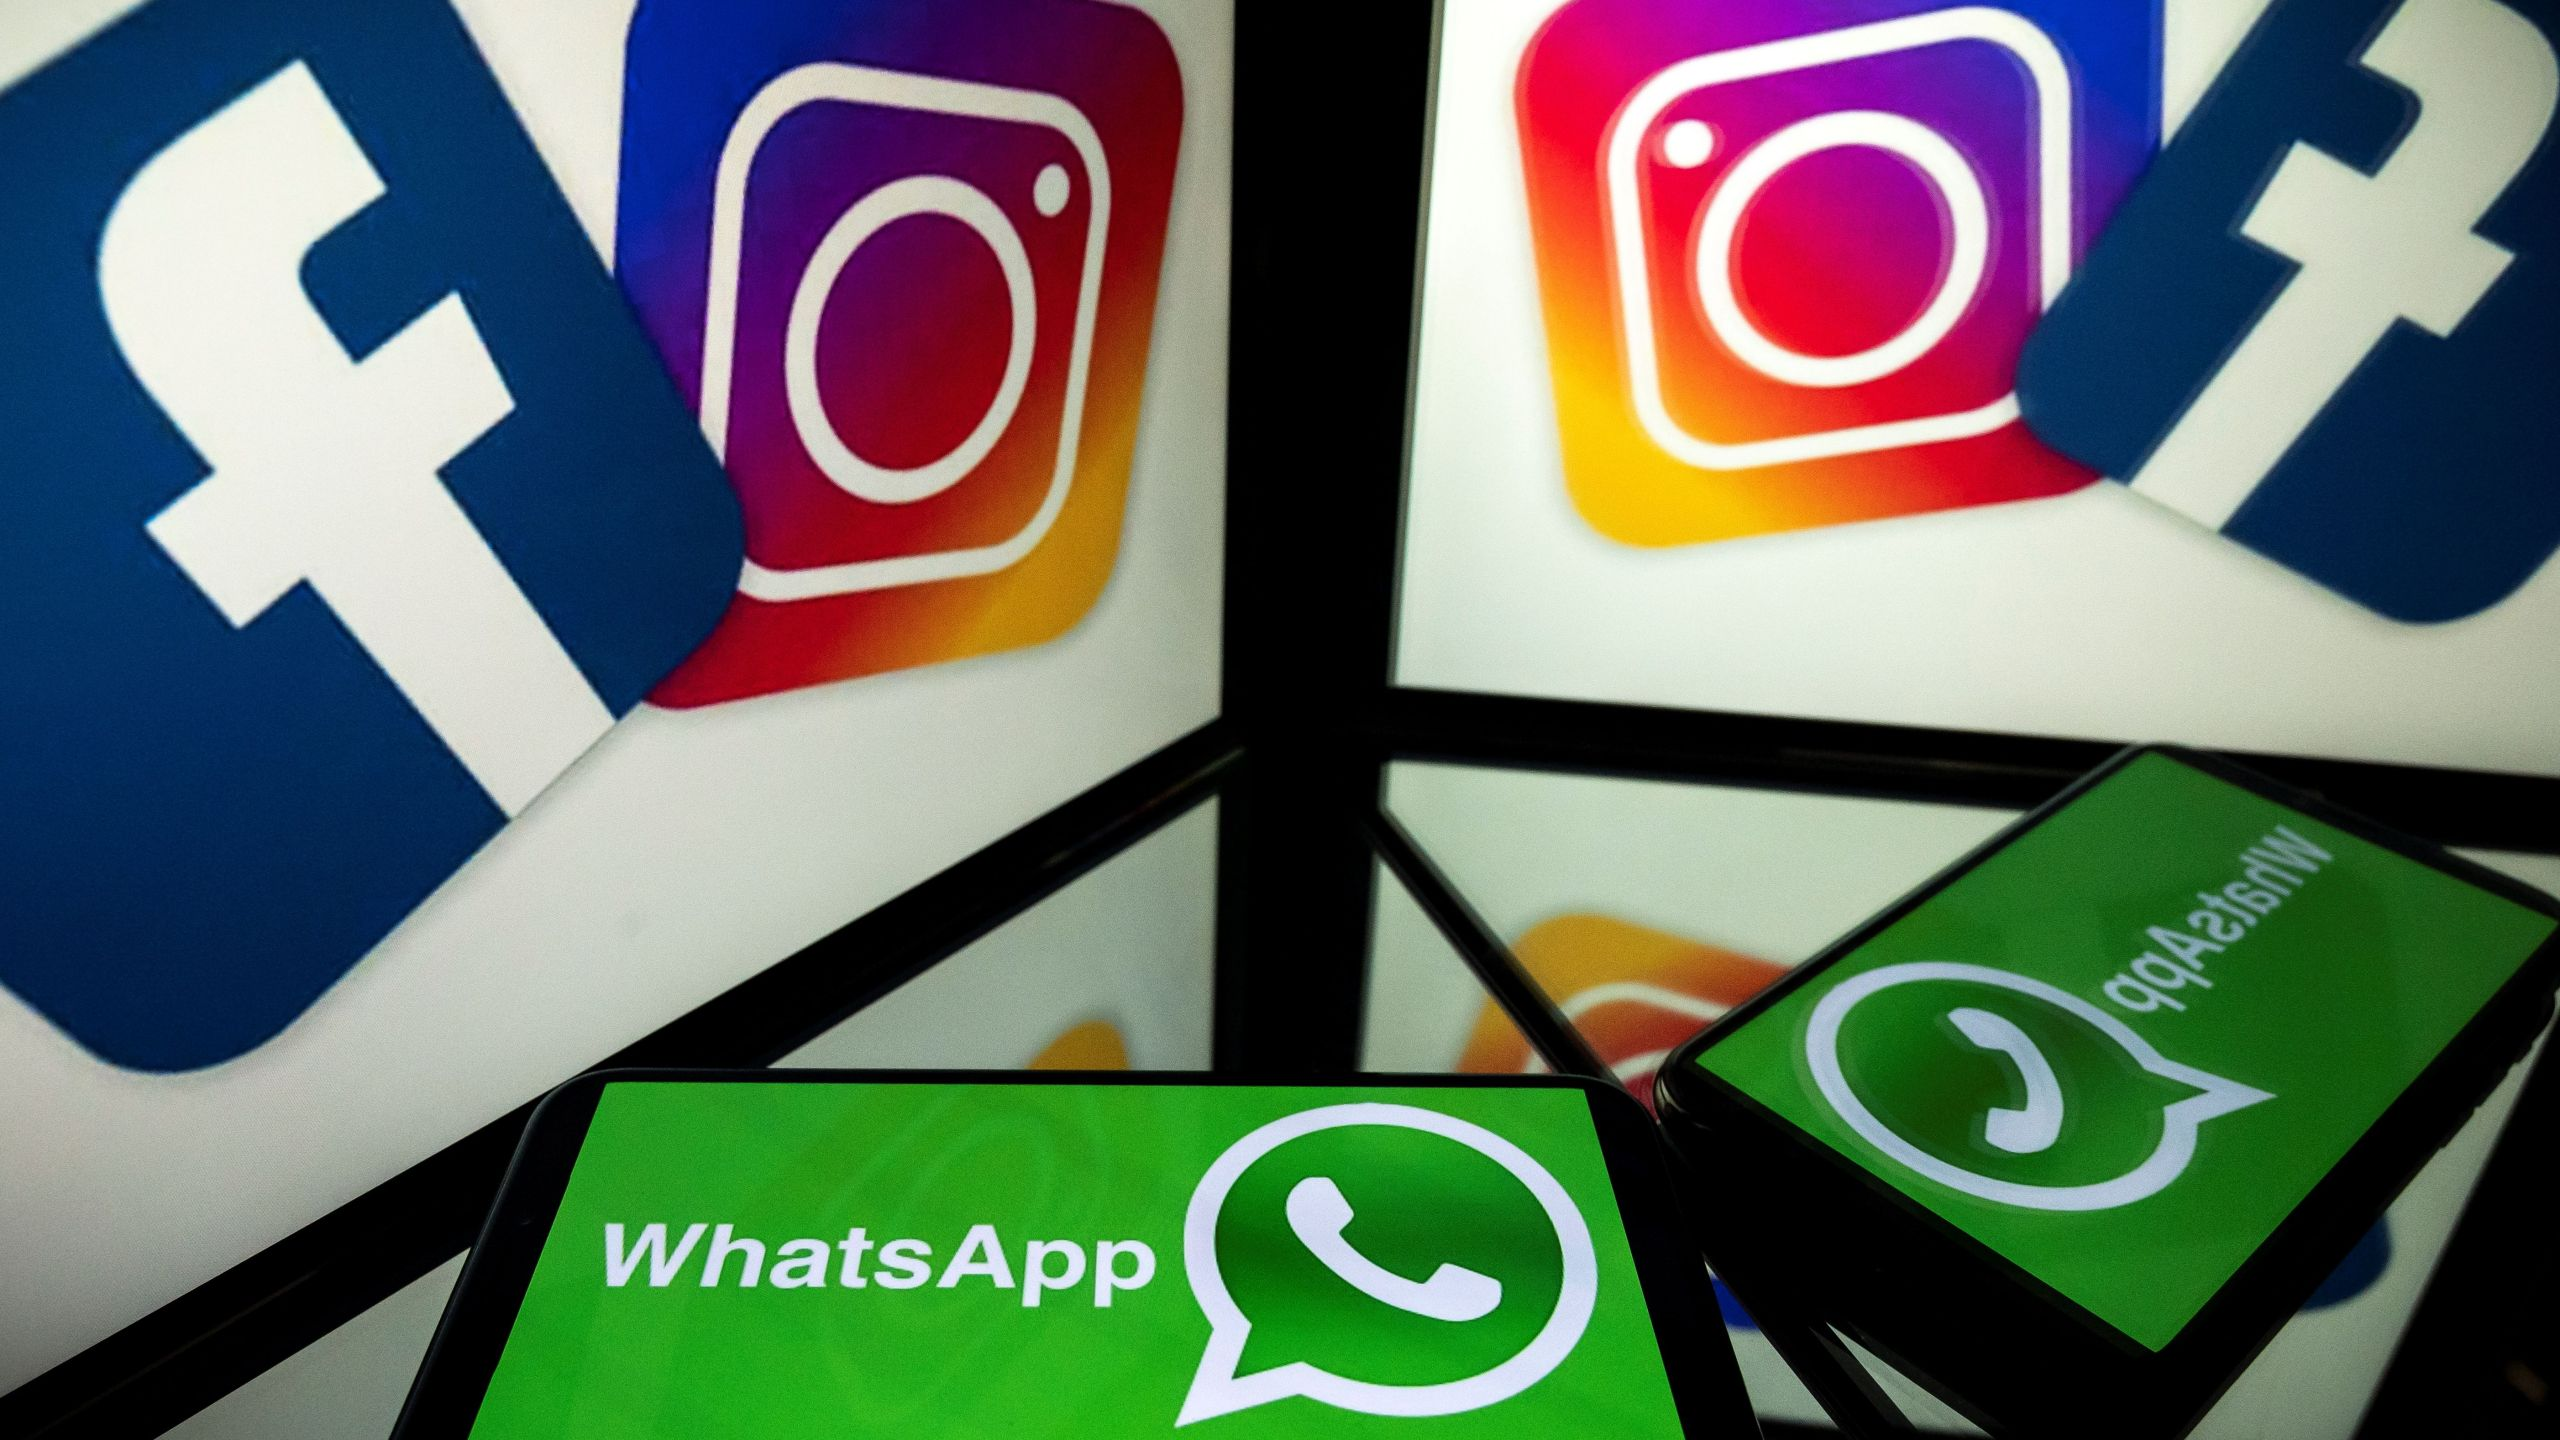 This picture, taken on Oct. 5, 2020, shows logos of social networks Facebook, Instagram and Whatsapp. (LIONEL BONAVENTURE/AFP via Getty Images)